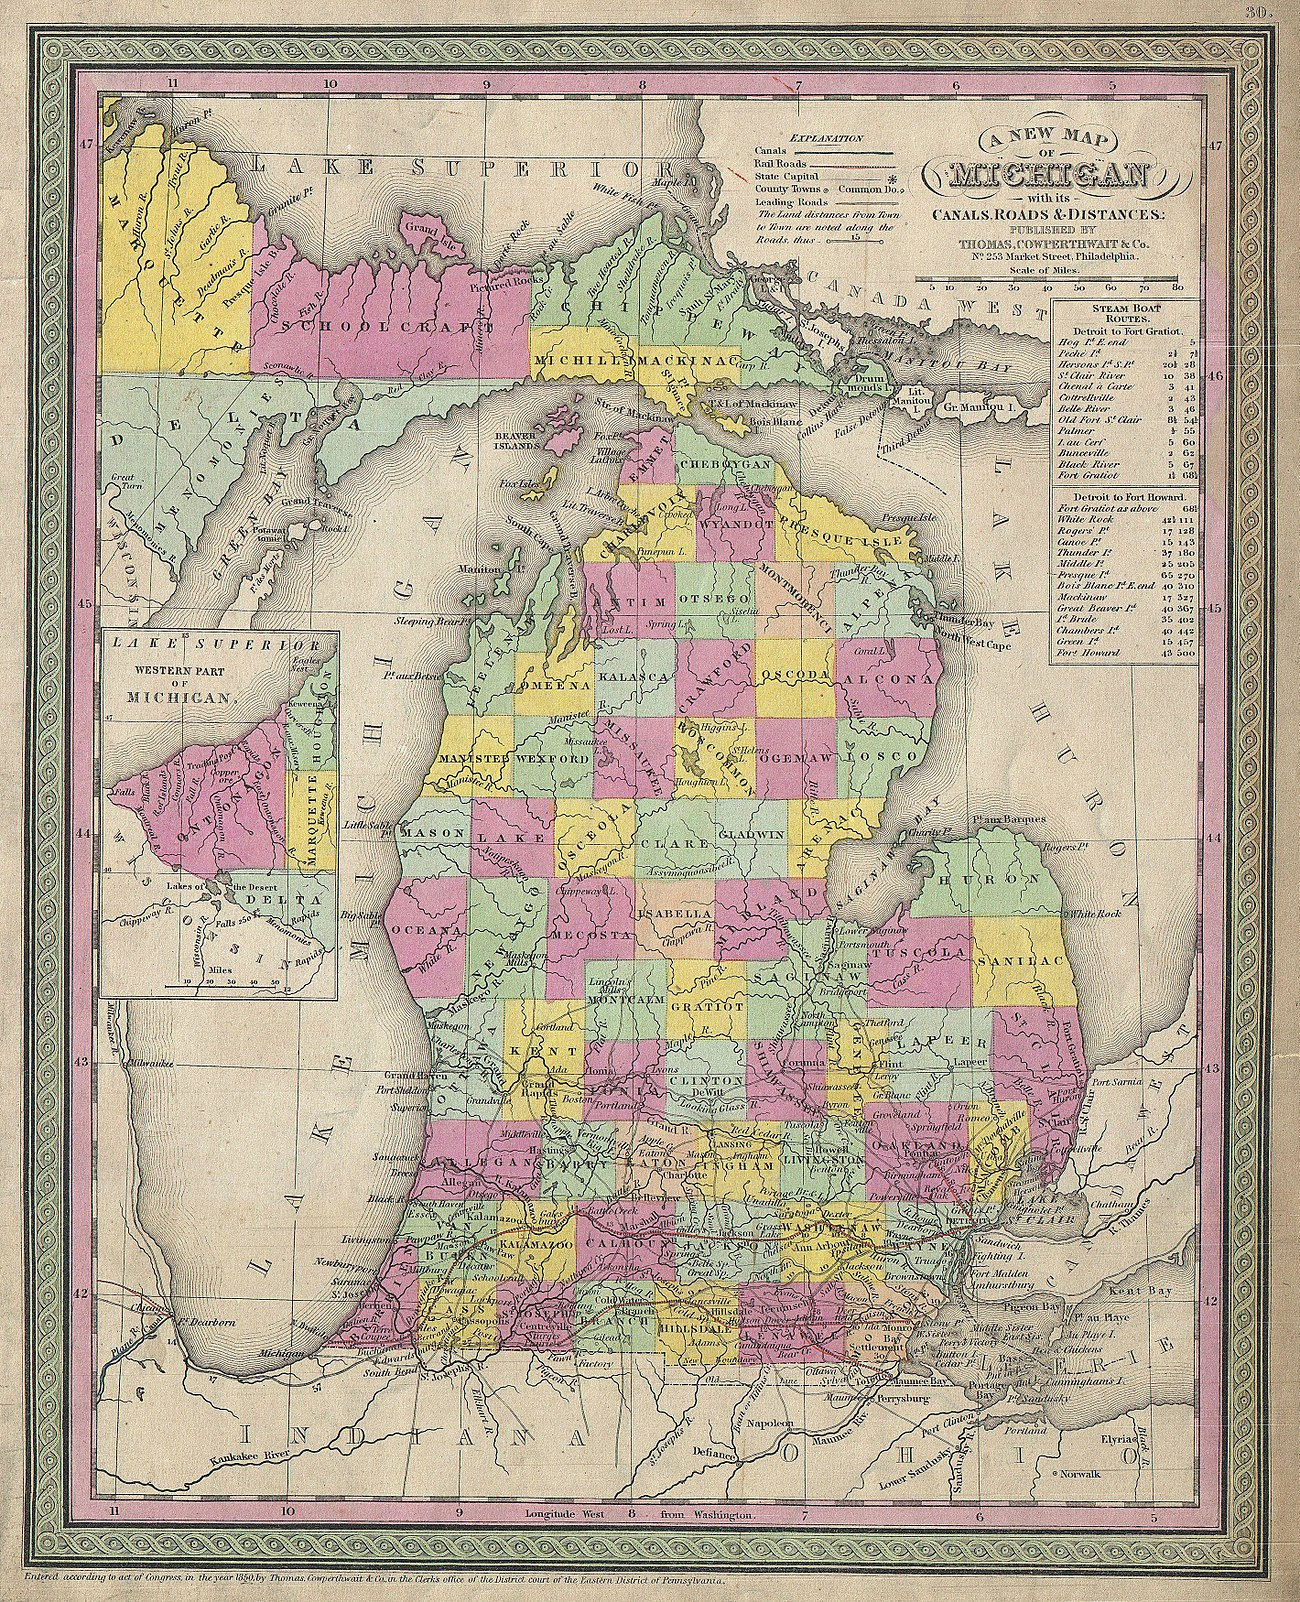 As settlers arrived between 1840 and 1853, the state broke up the single Michilimackinac County and established platted counties across Northern Michigan. This 1853 map by S. A. Mitchell shows an improved understanding of the contours and inland lakes and streams of Northern Michigan based on recent land surveys.